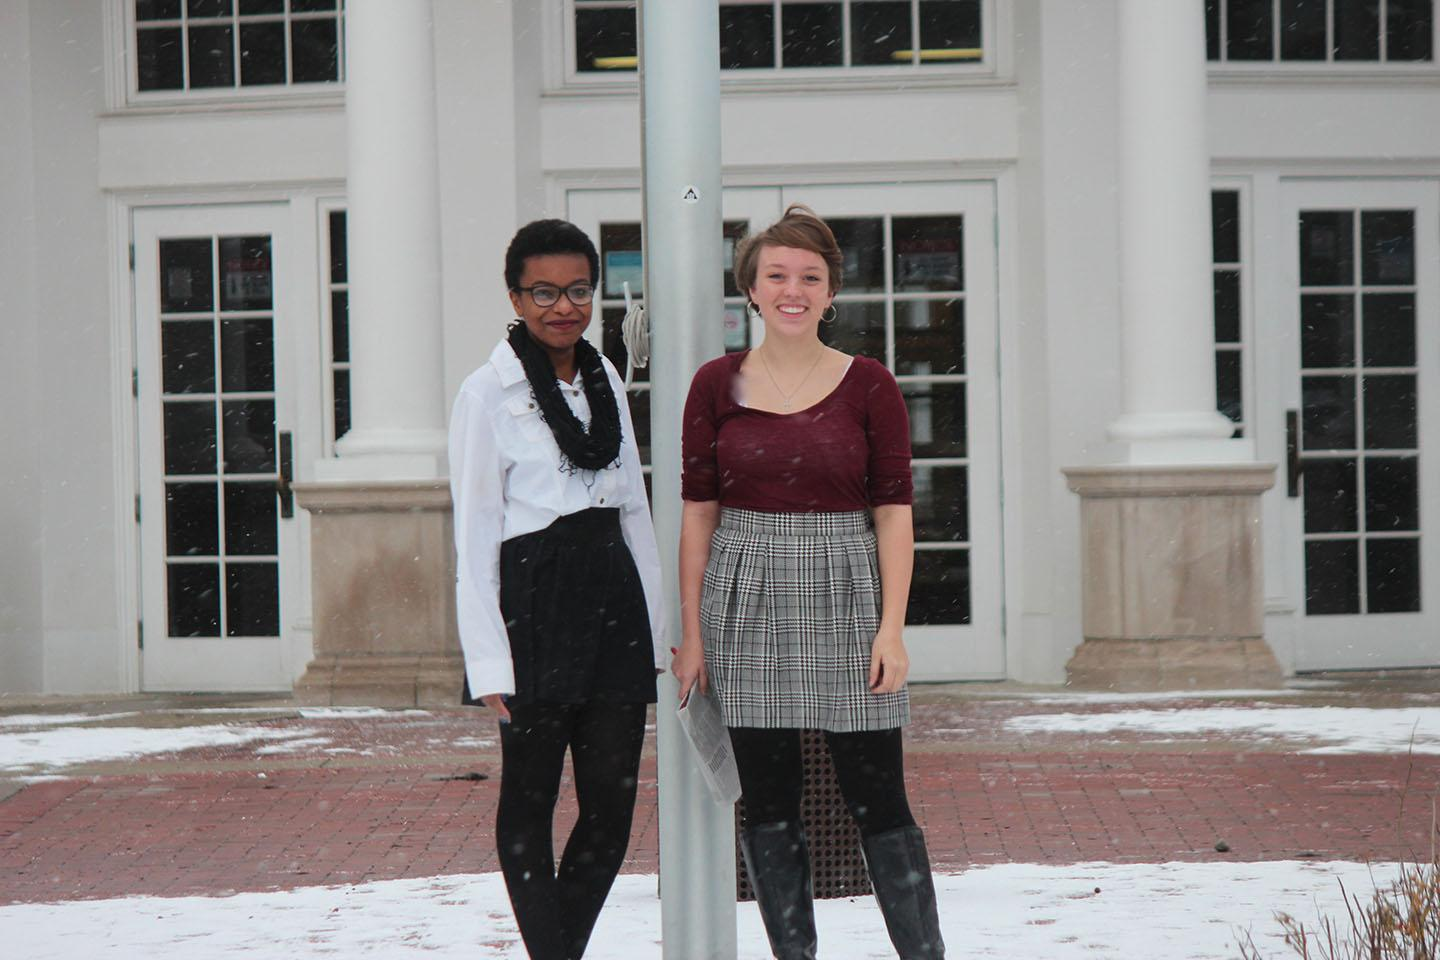 Arheghan (left) and Grube (right) both have personal experiences as LGBT teens at Shaker Heights High School and are sharing their opinions on the culture of the school.